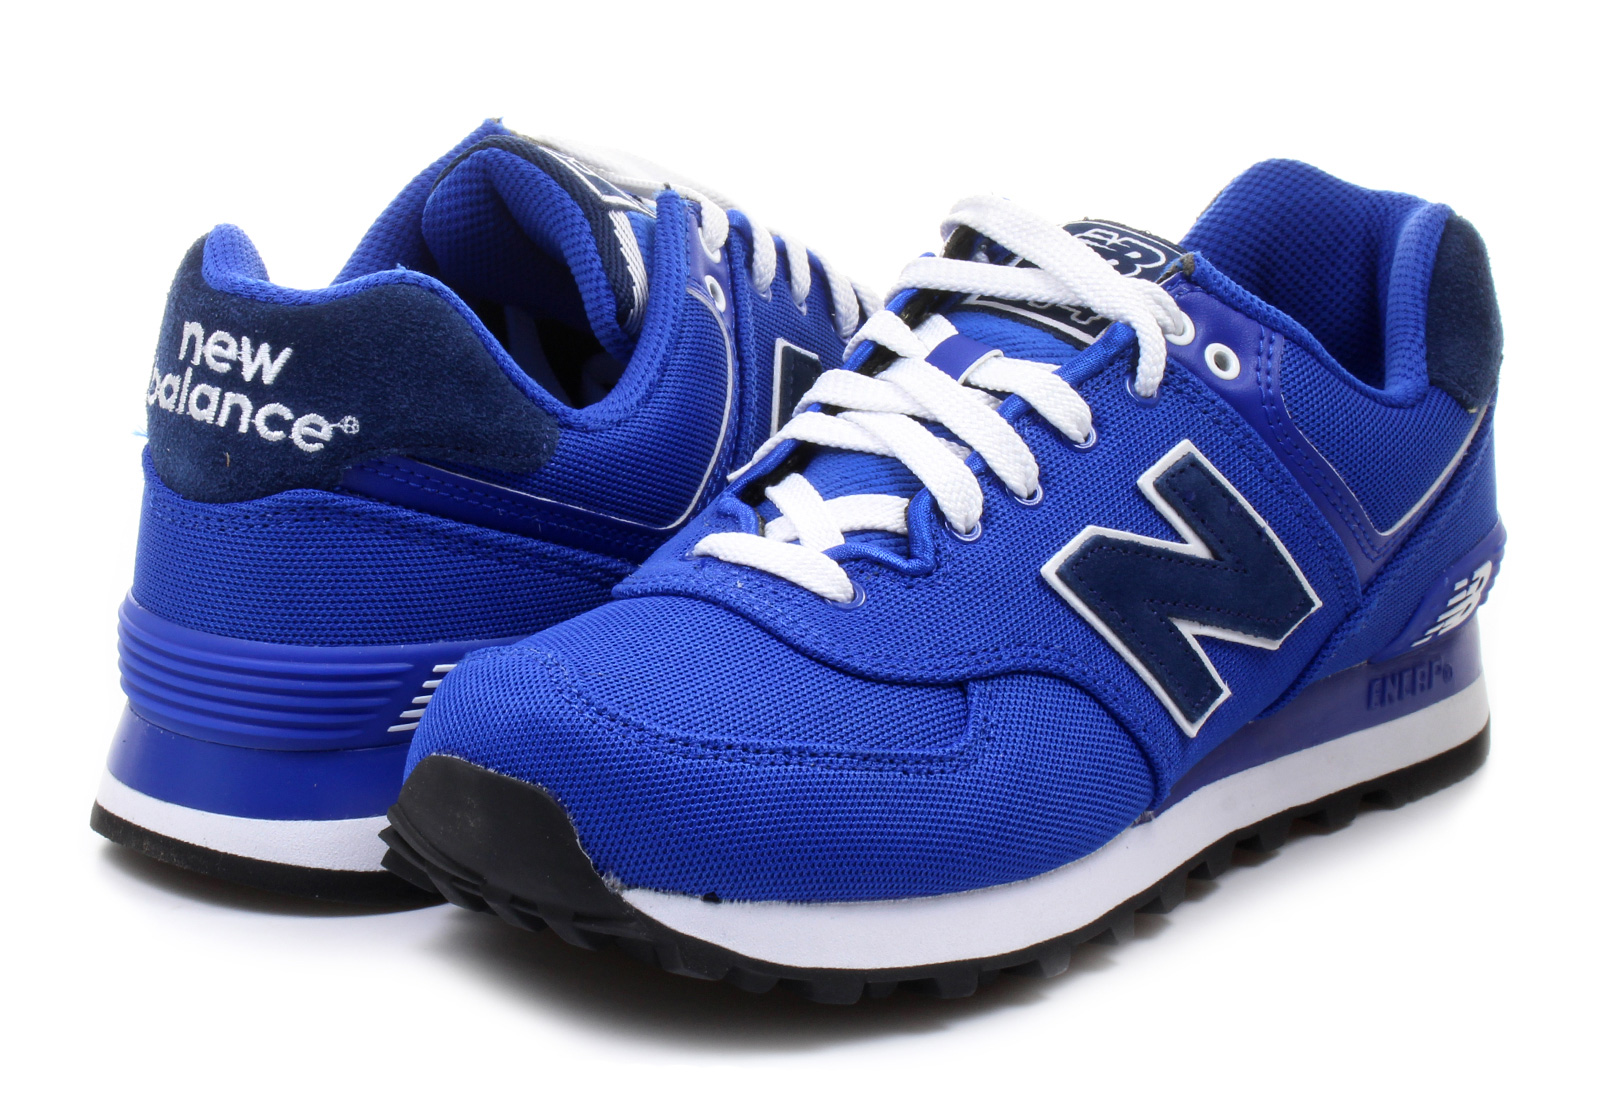 new balance shoes ml574 ml574pob online shop for sneakers shoes and boots. Black Bedroom Furniture Sets. Home Design Ideas